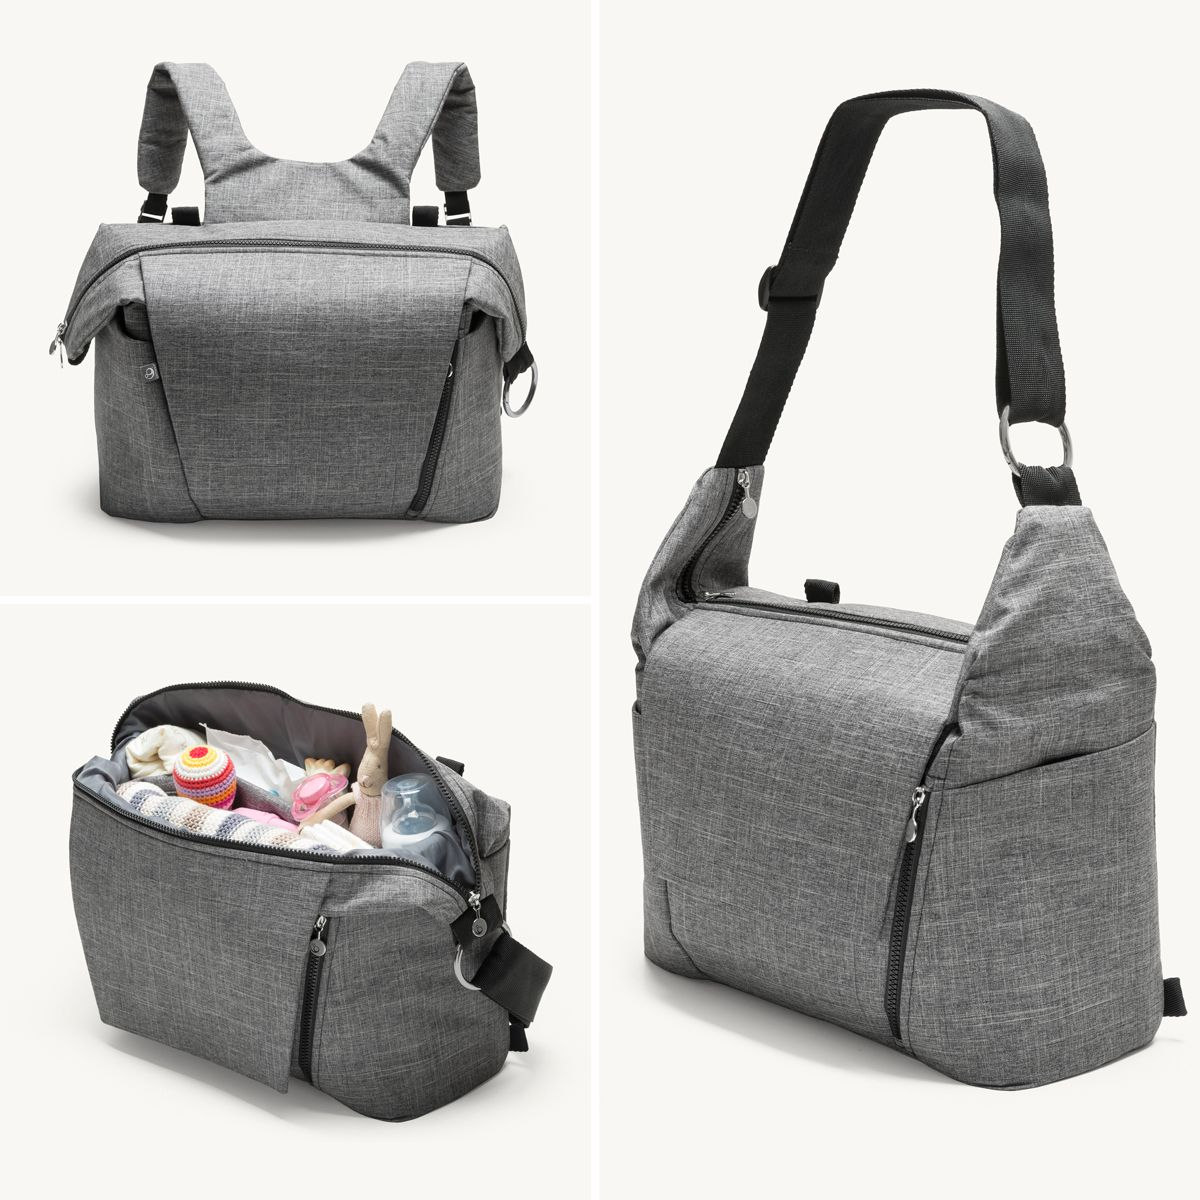 New From Stokke A Changing Bag That Doubles As A Backpack